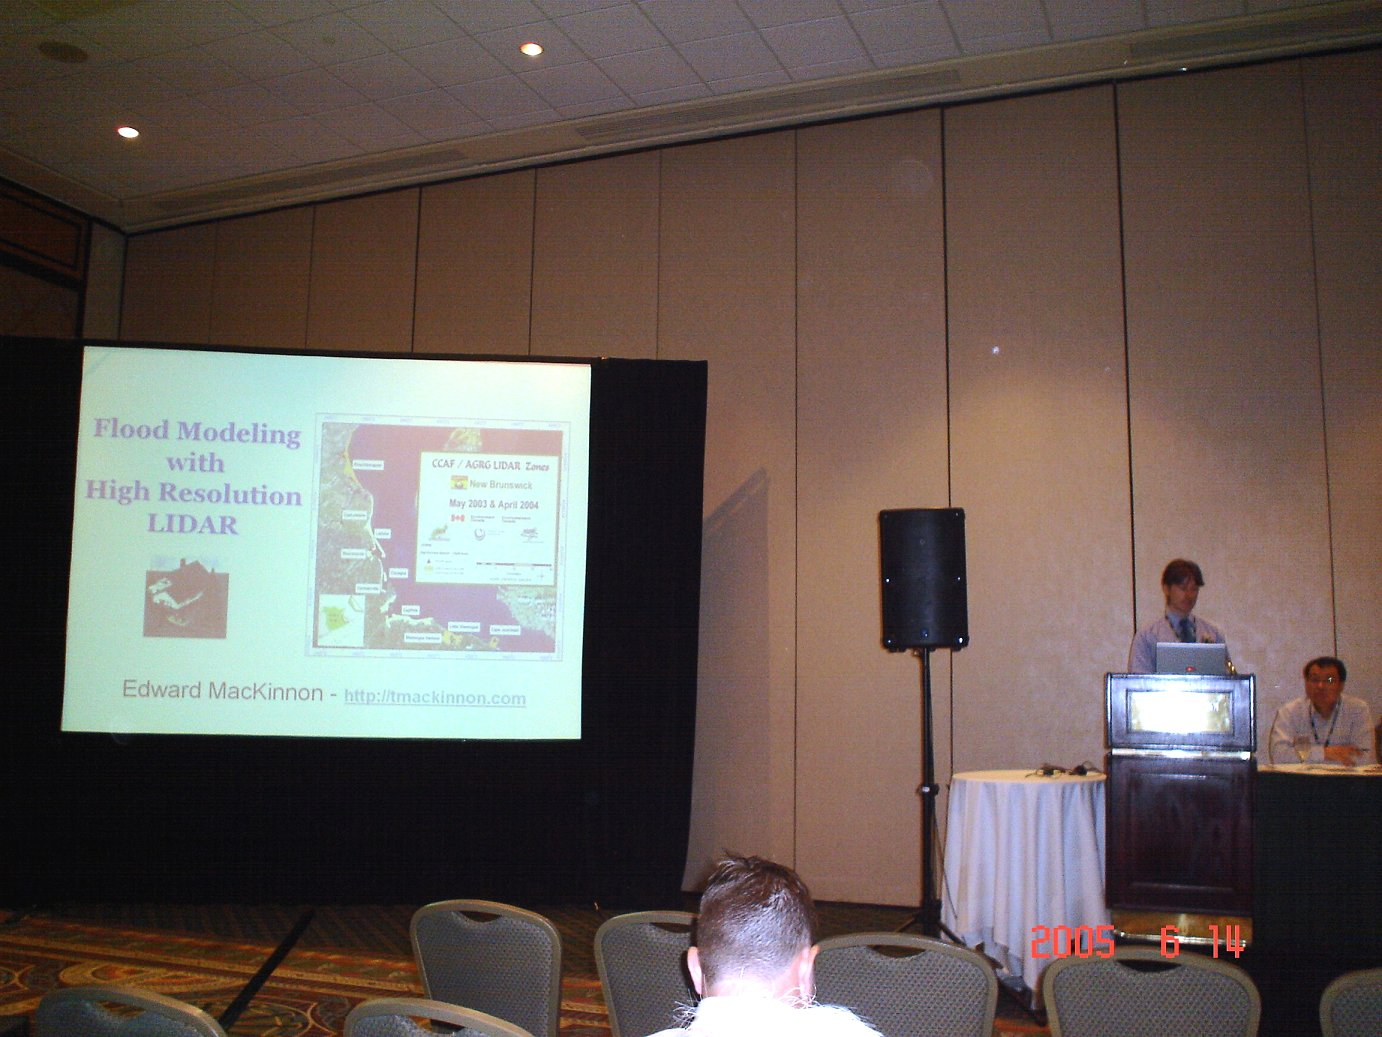 3D Flood Modeling with LIDAR - Three Dimensional Flood Modeling with High Resolution LIDAR presentation at the Canadian Institute of Geomatics 2005 Conference held in Ottawa, Ontario